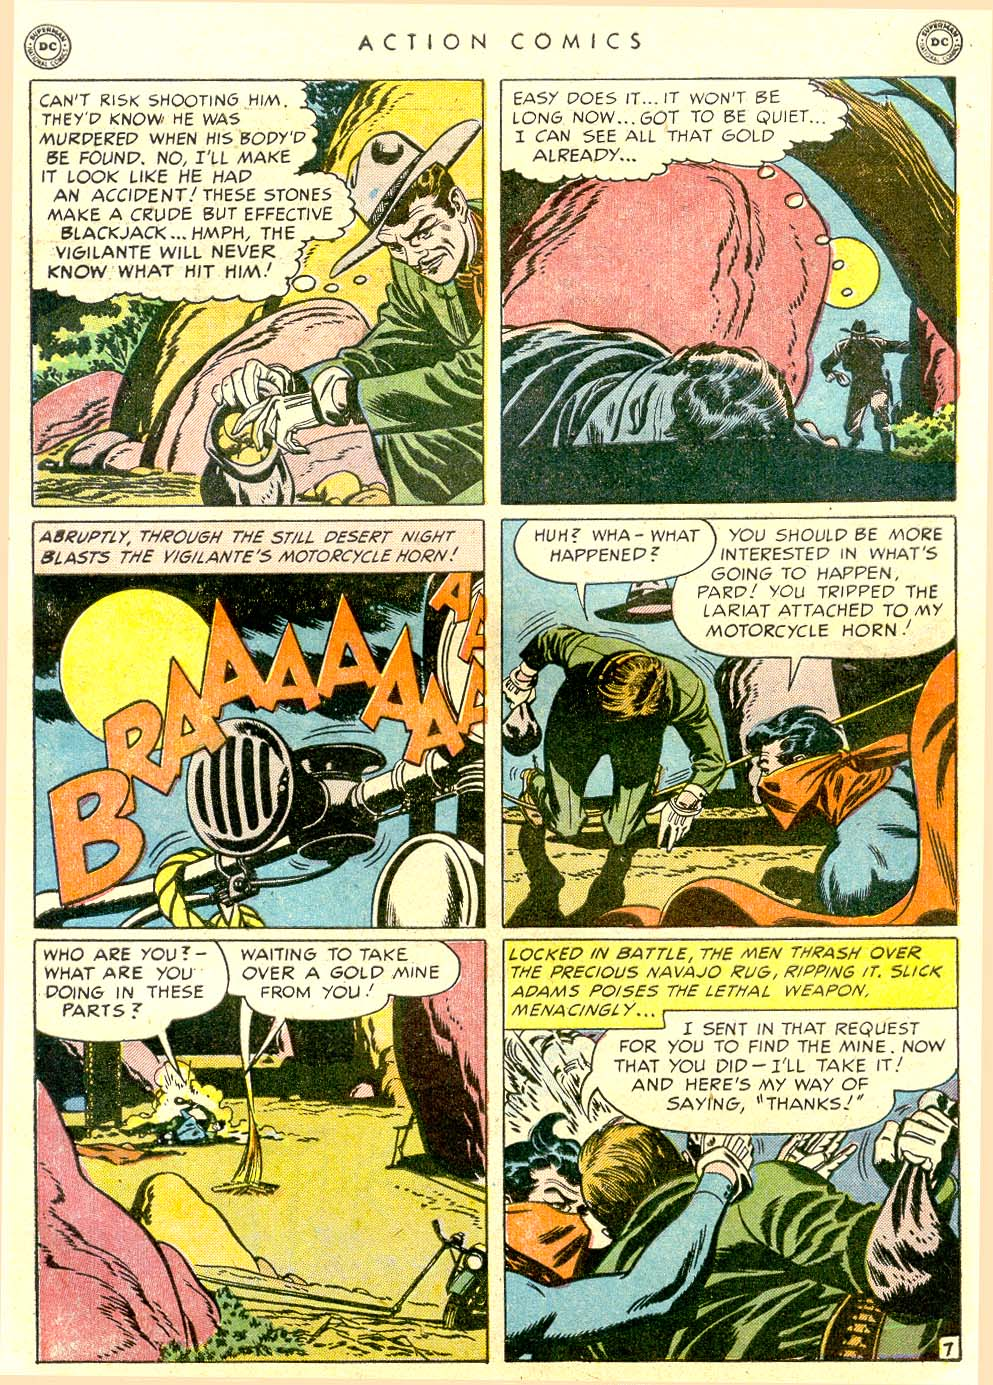 Action Comics (1938) 144 Page 44